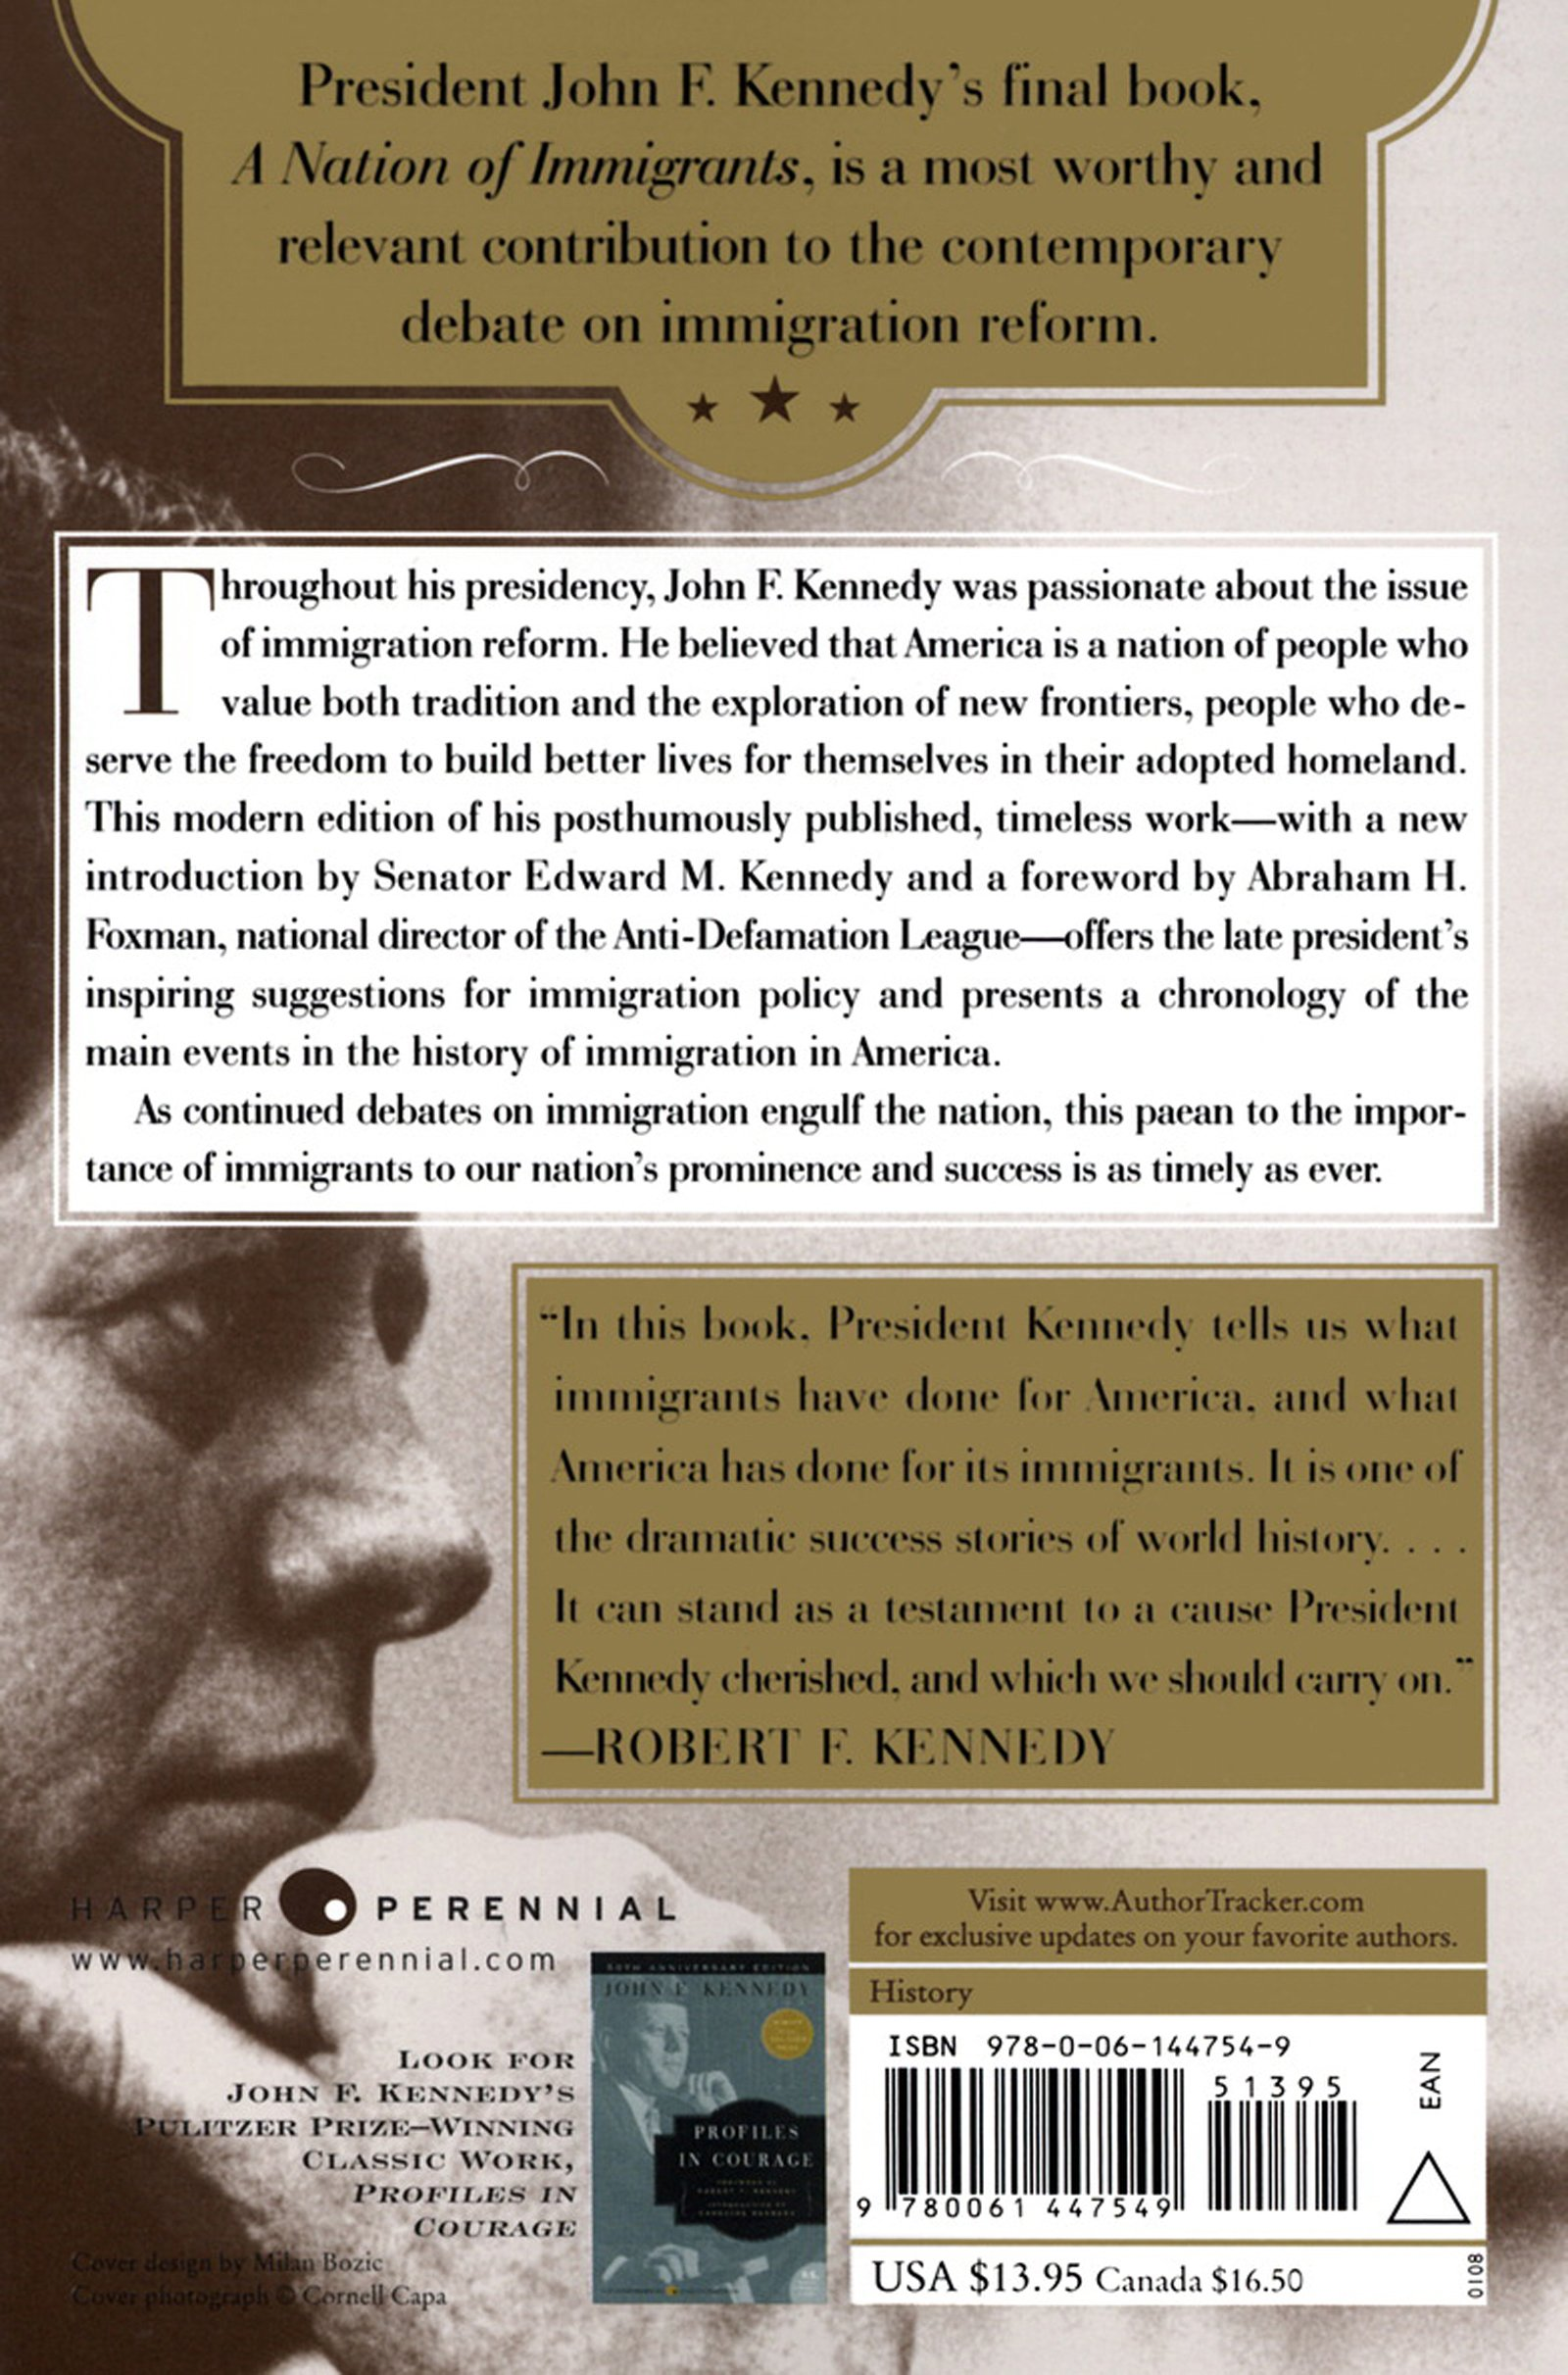 Amazon: A Nation Of Immigrants (9780061447549): John F Kennedy: Books